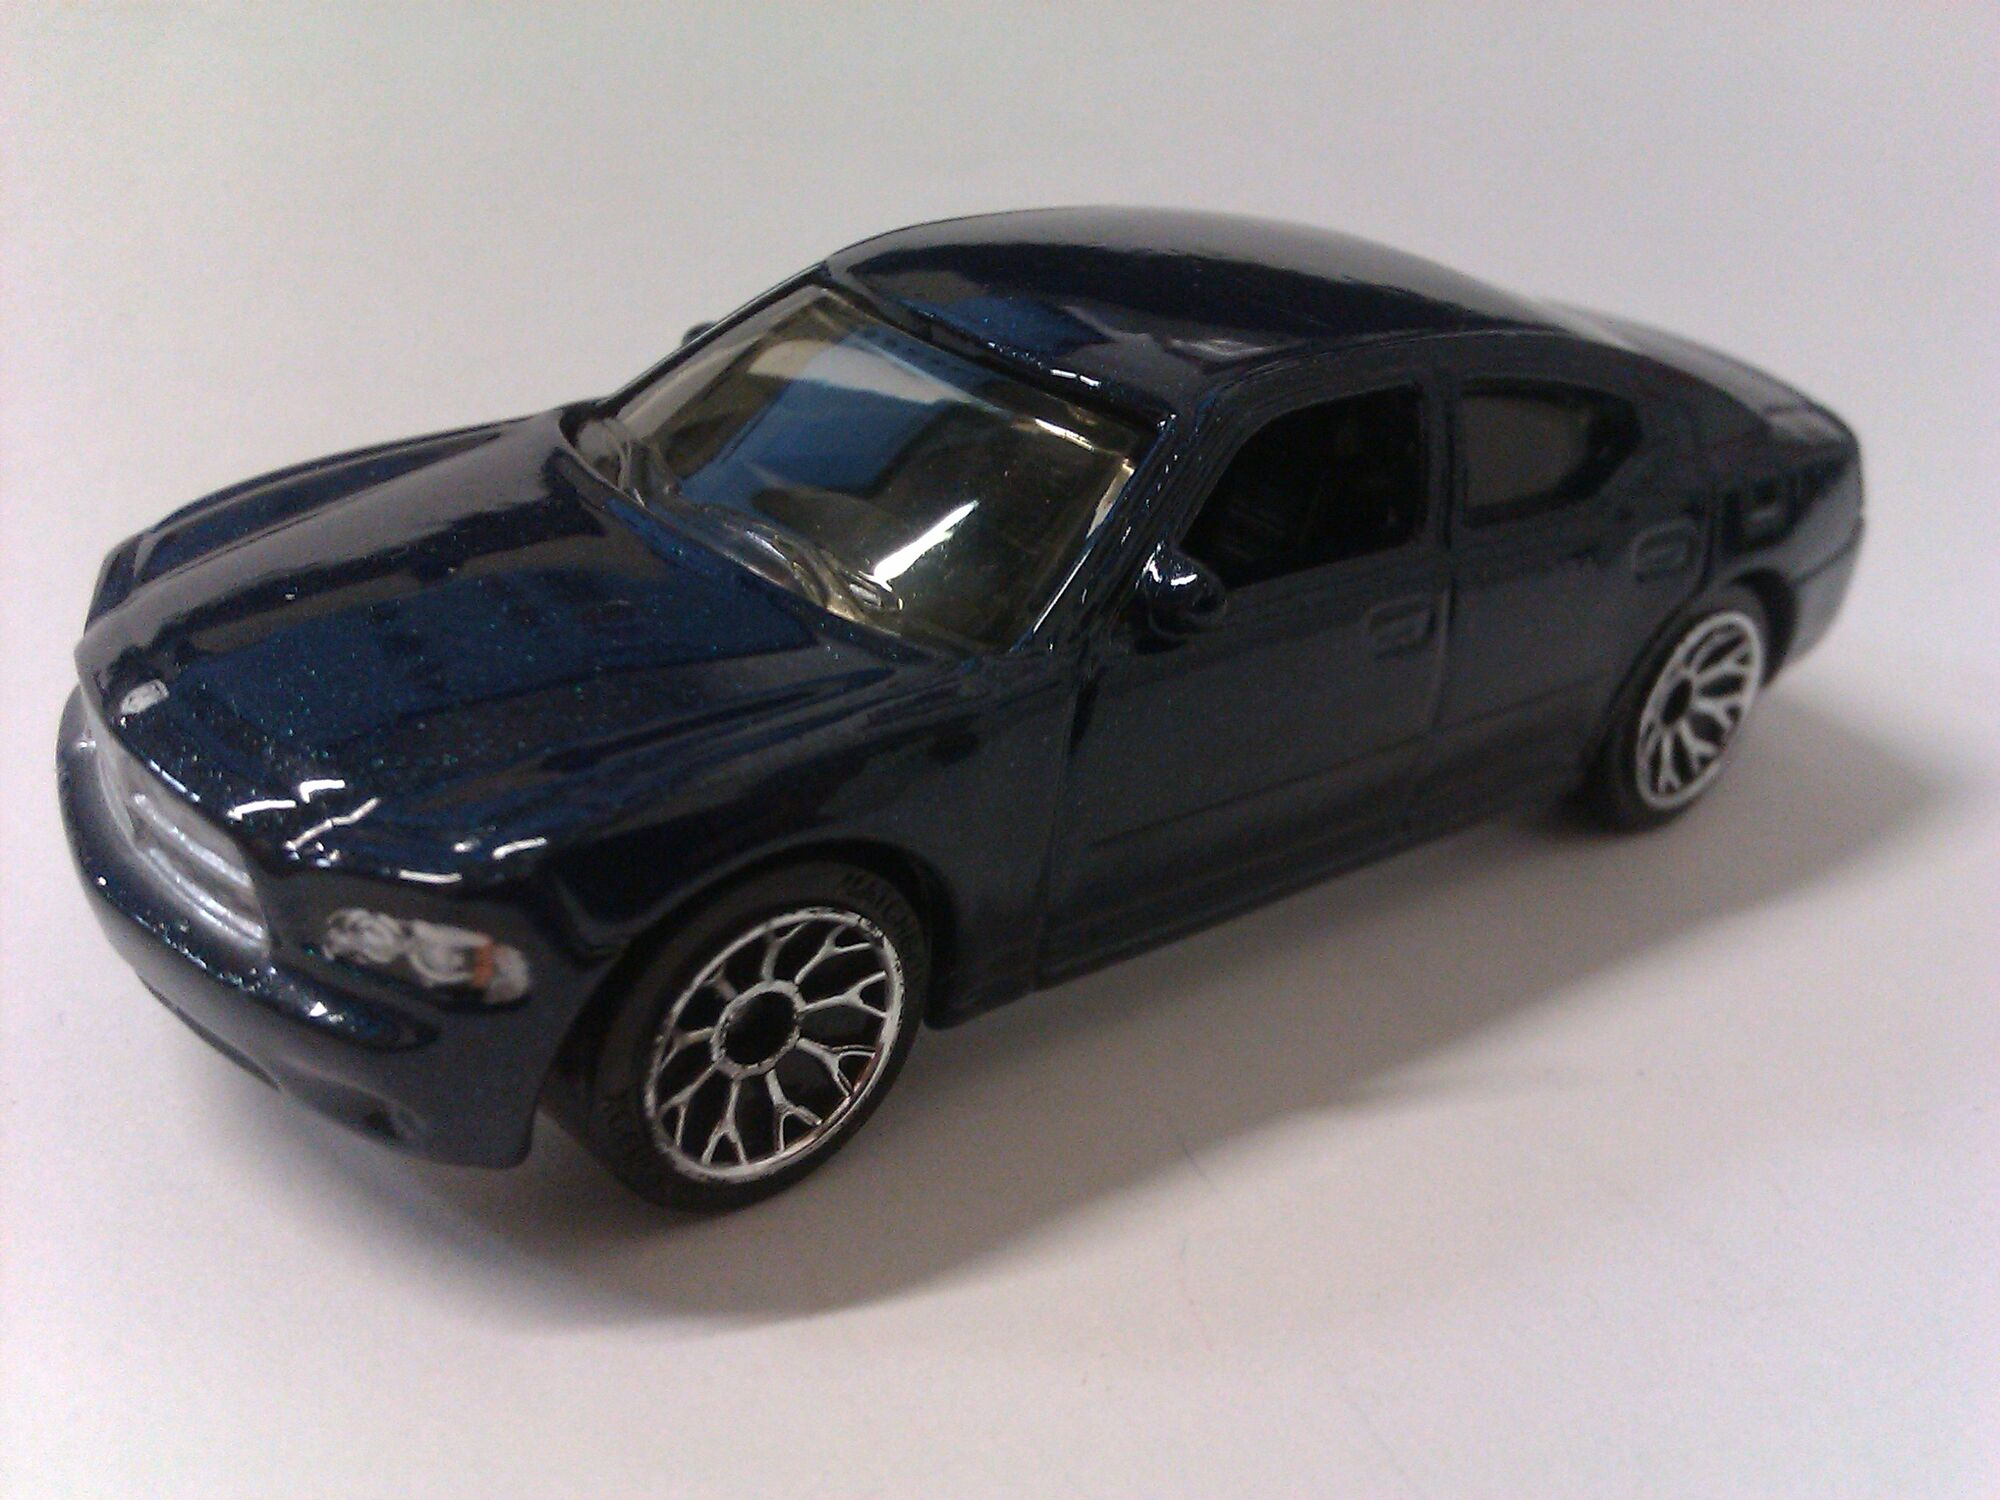 Dodge Charger   Matchbox Cars Wiki   FANDOM powered by Wikia